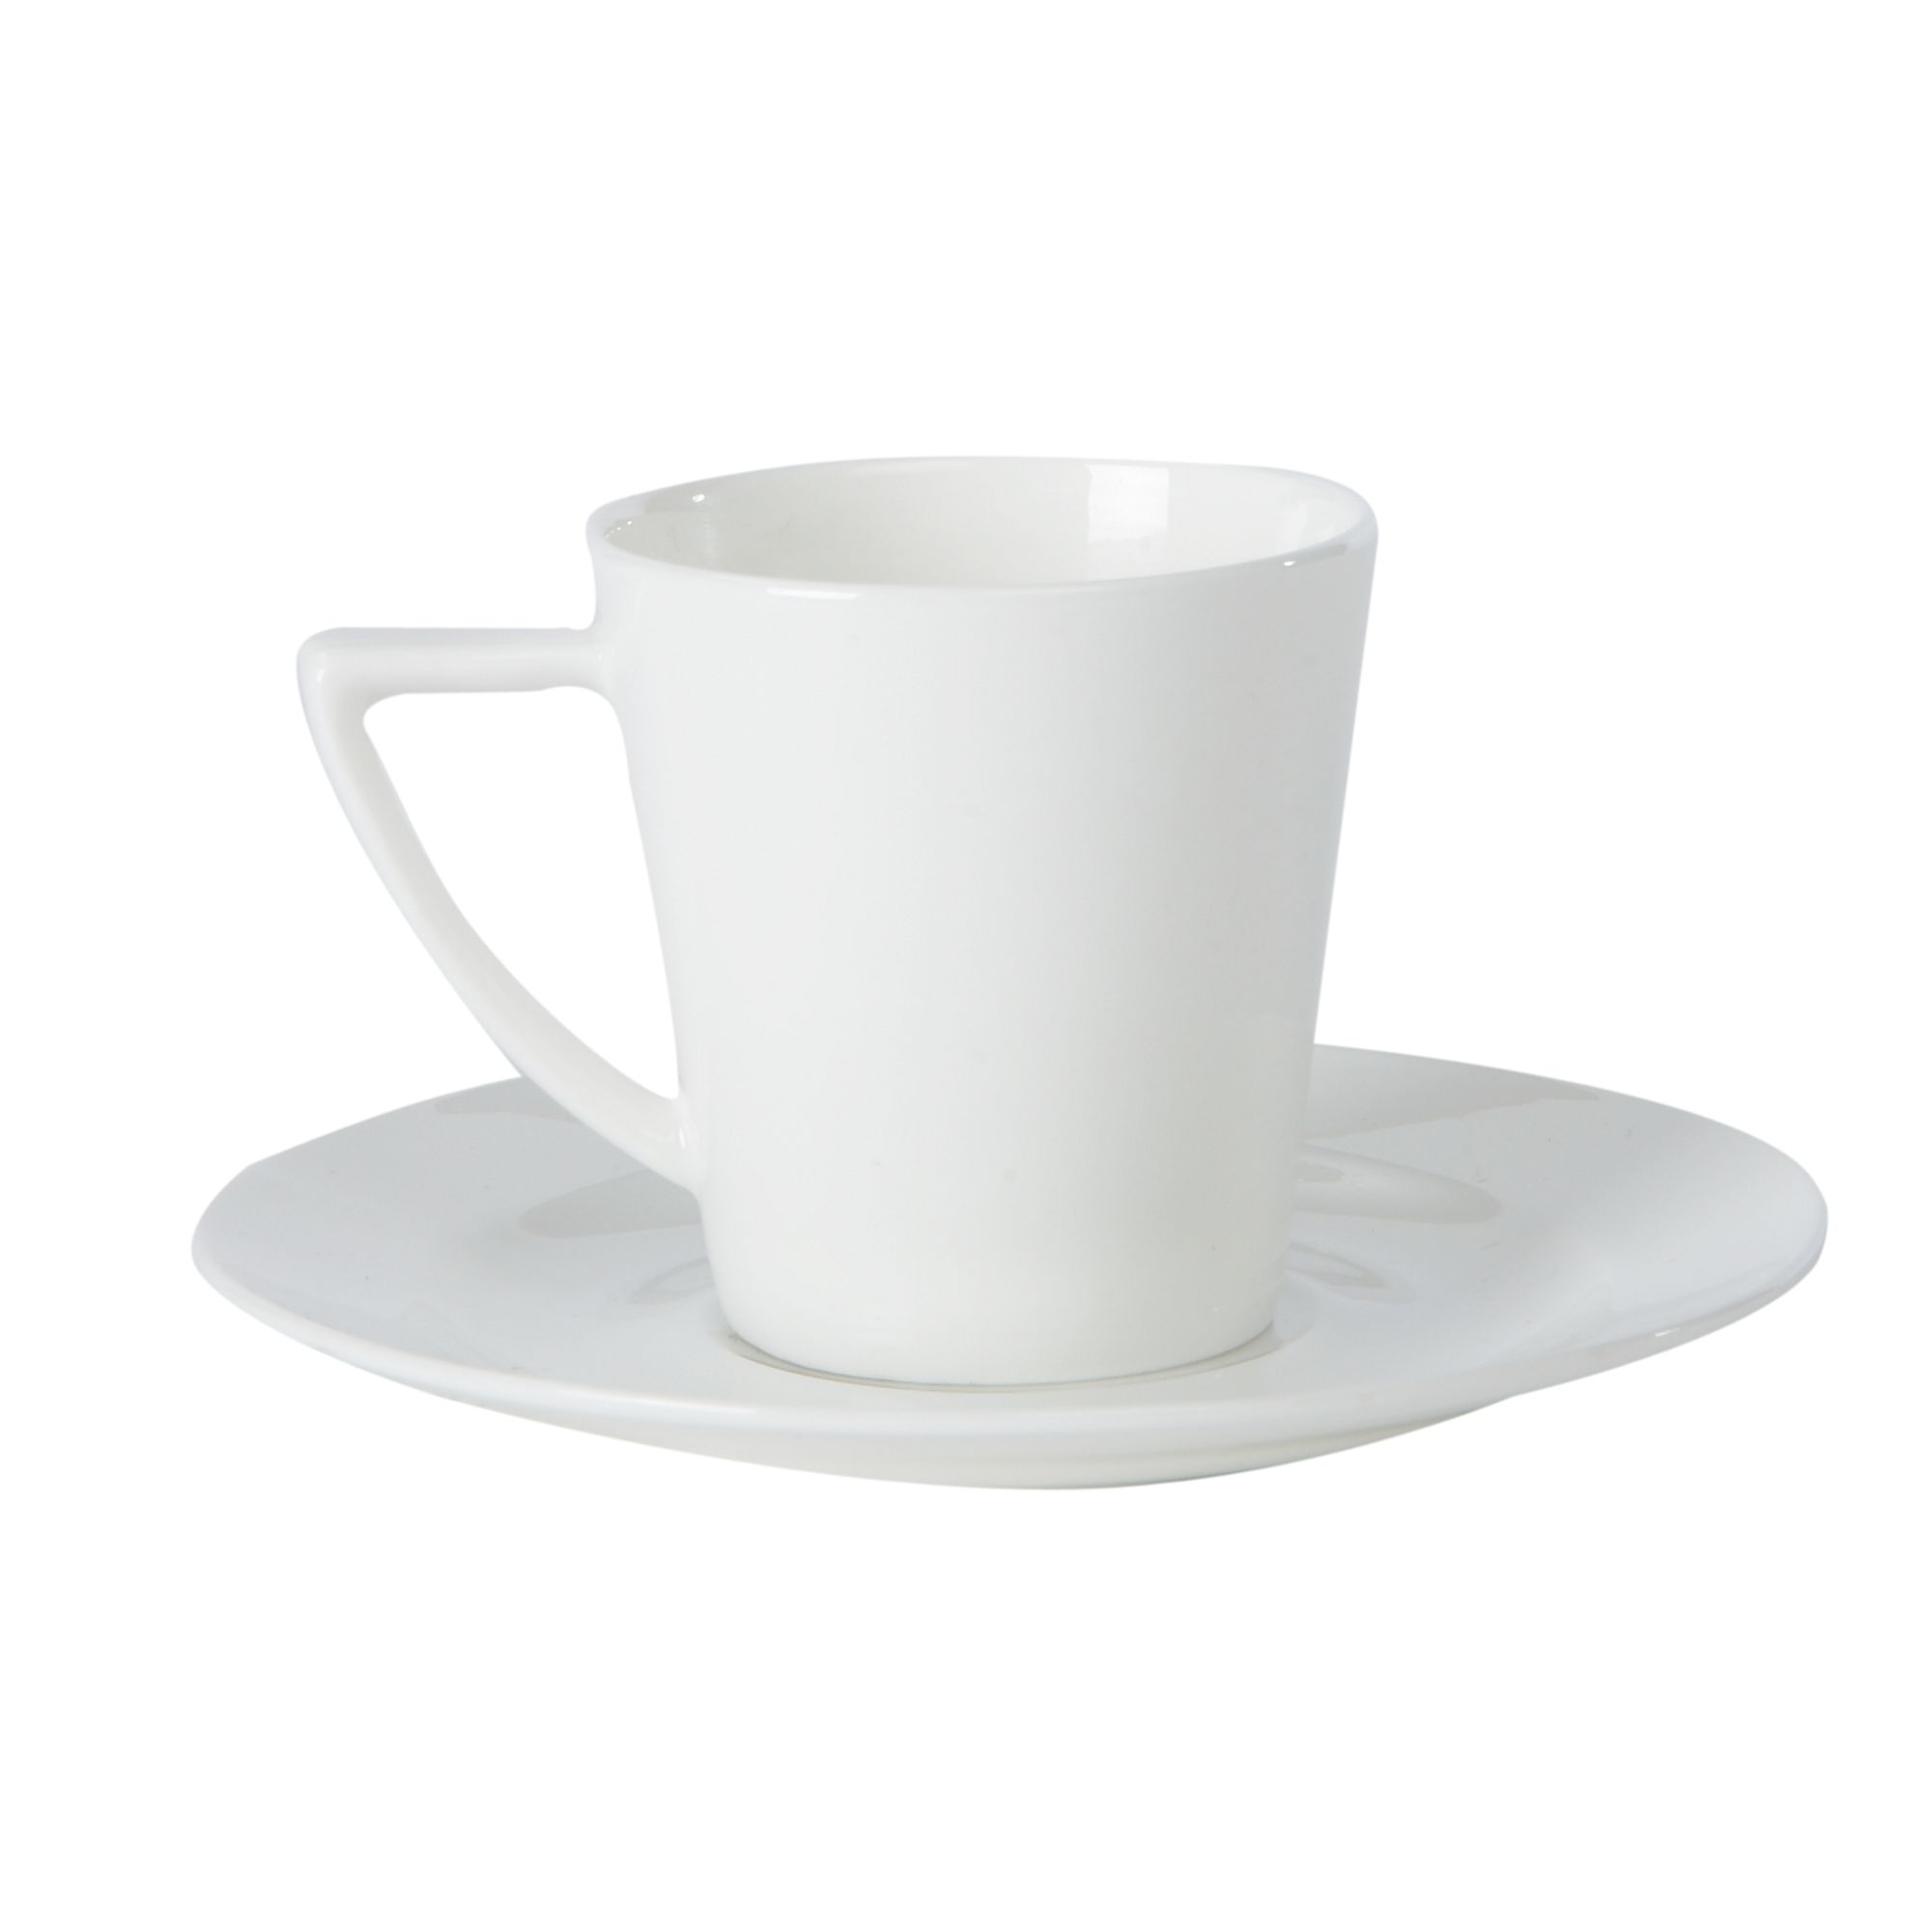 Eternal espresso cup and saucer